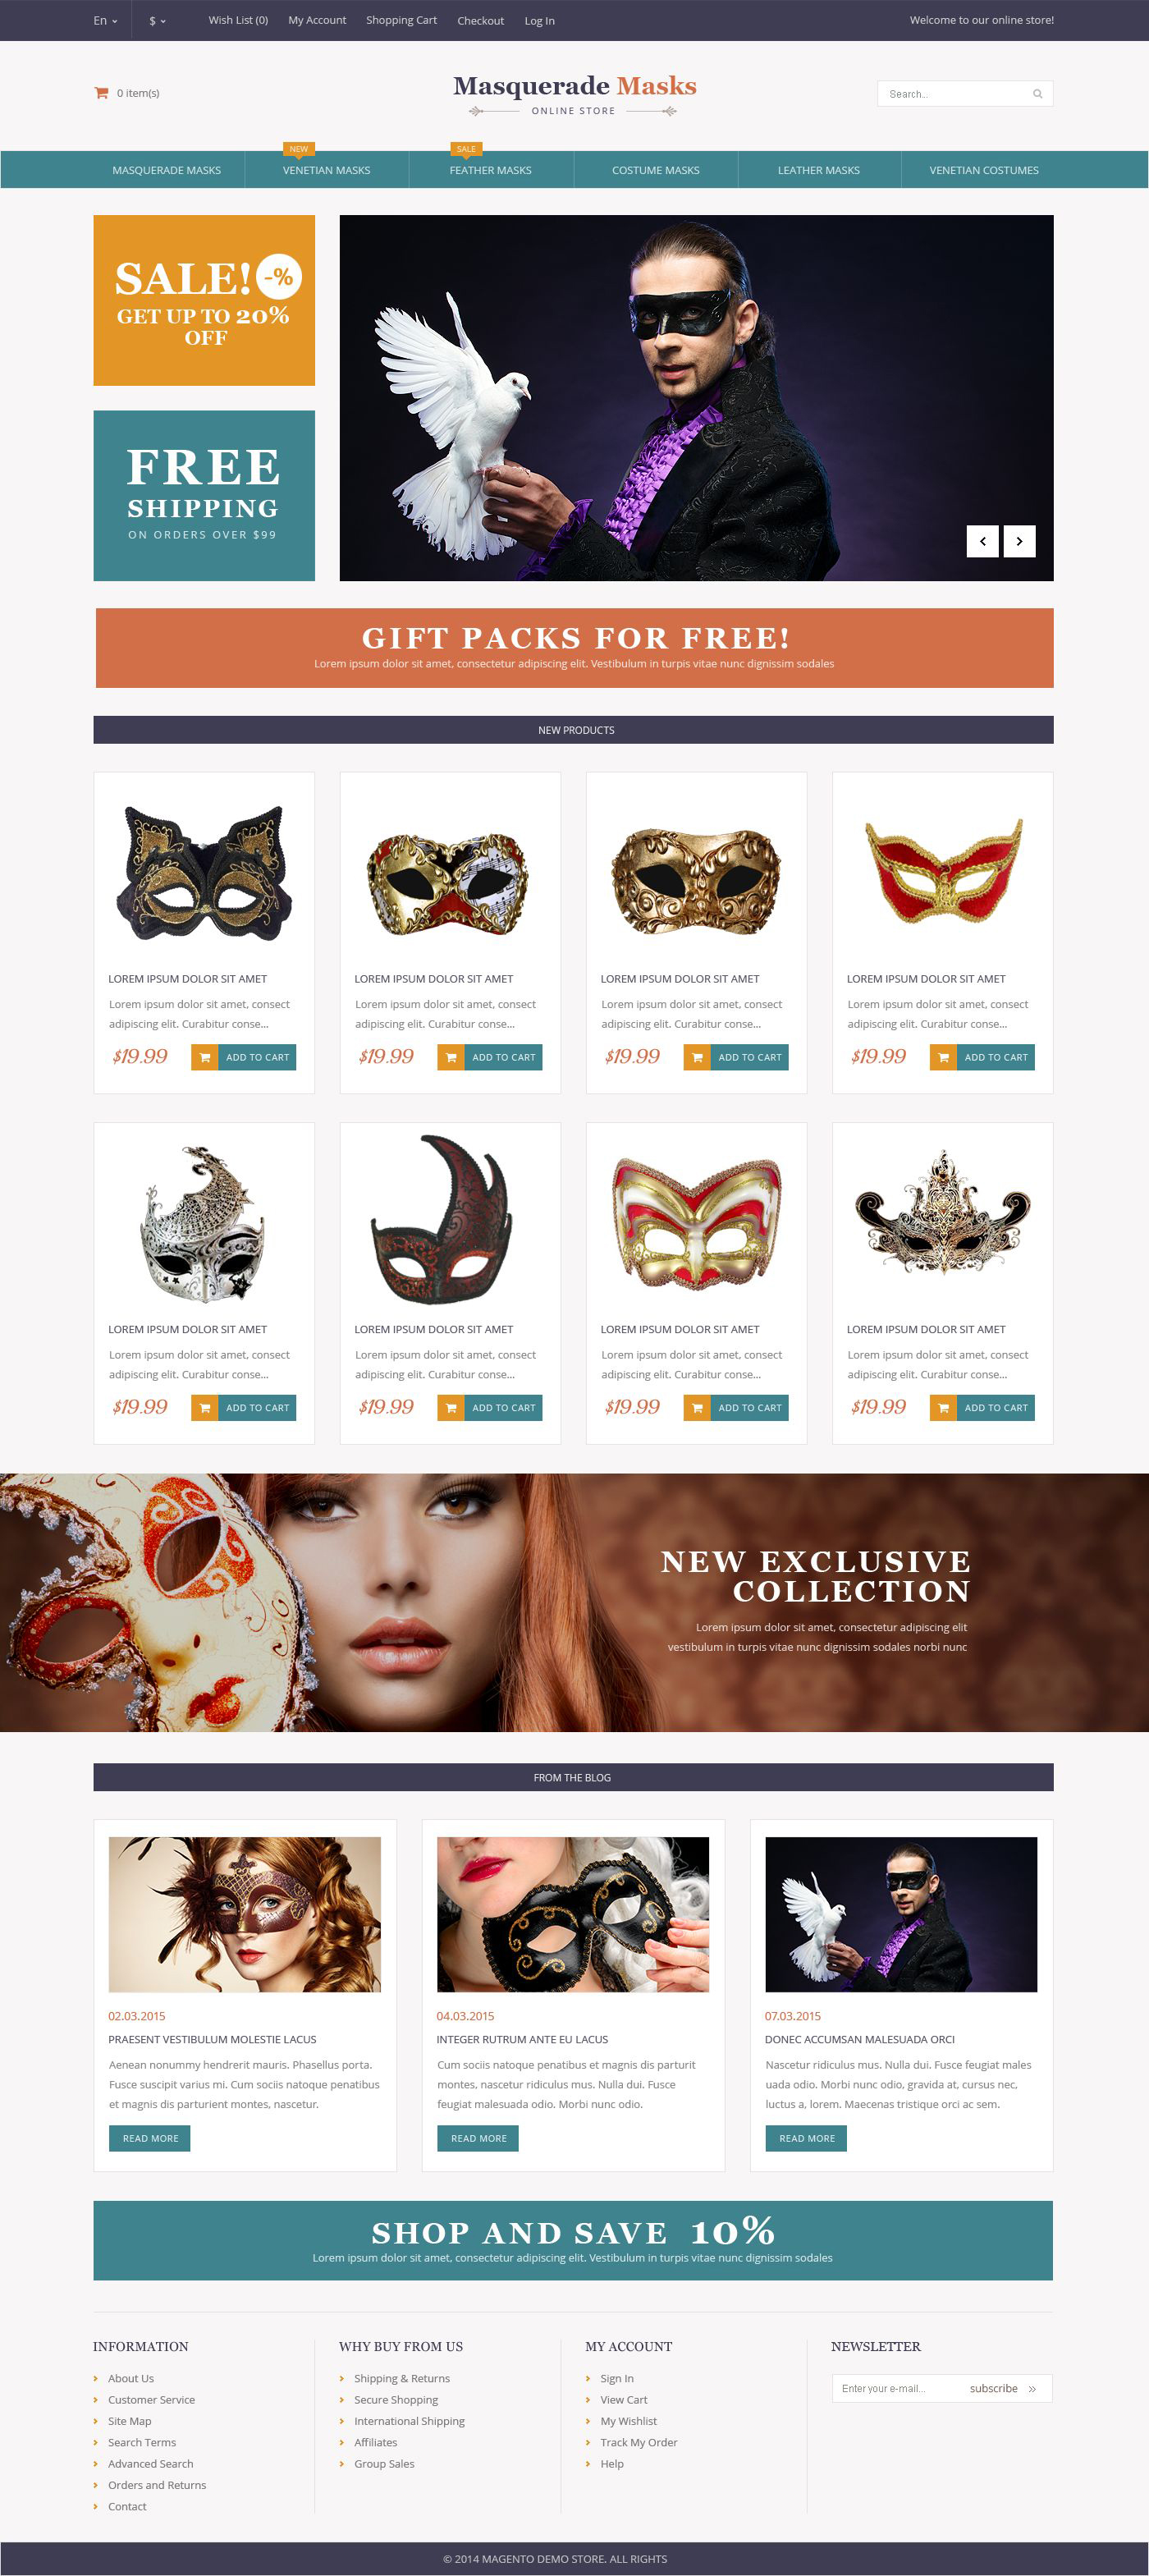 The Masks Masquerade Store Magento Design 53176, one of the best Magento themes of its kind (entertainment, most popular), also known as Masks masquerade store Magento template, shopping cart Magento template, services Magento template, prices Magento template, holidays Magento template, mask Magento template, wigs Magento template, hair Magento template, footwear Magento template, costumes and related with Masks masquerade store, shopping cart, services, prices, holidays, mask, wigs, hair, footwear, costumes, etc.